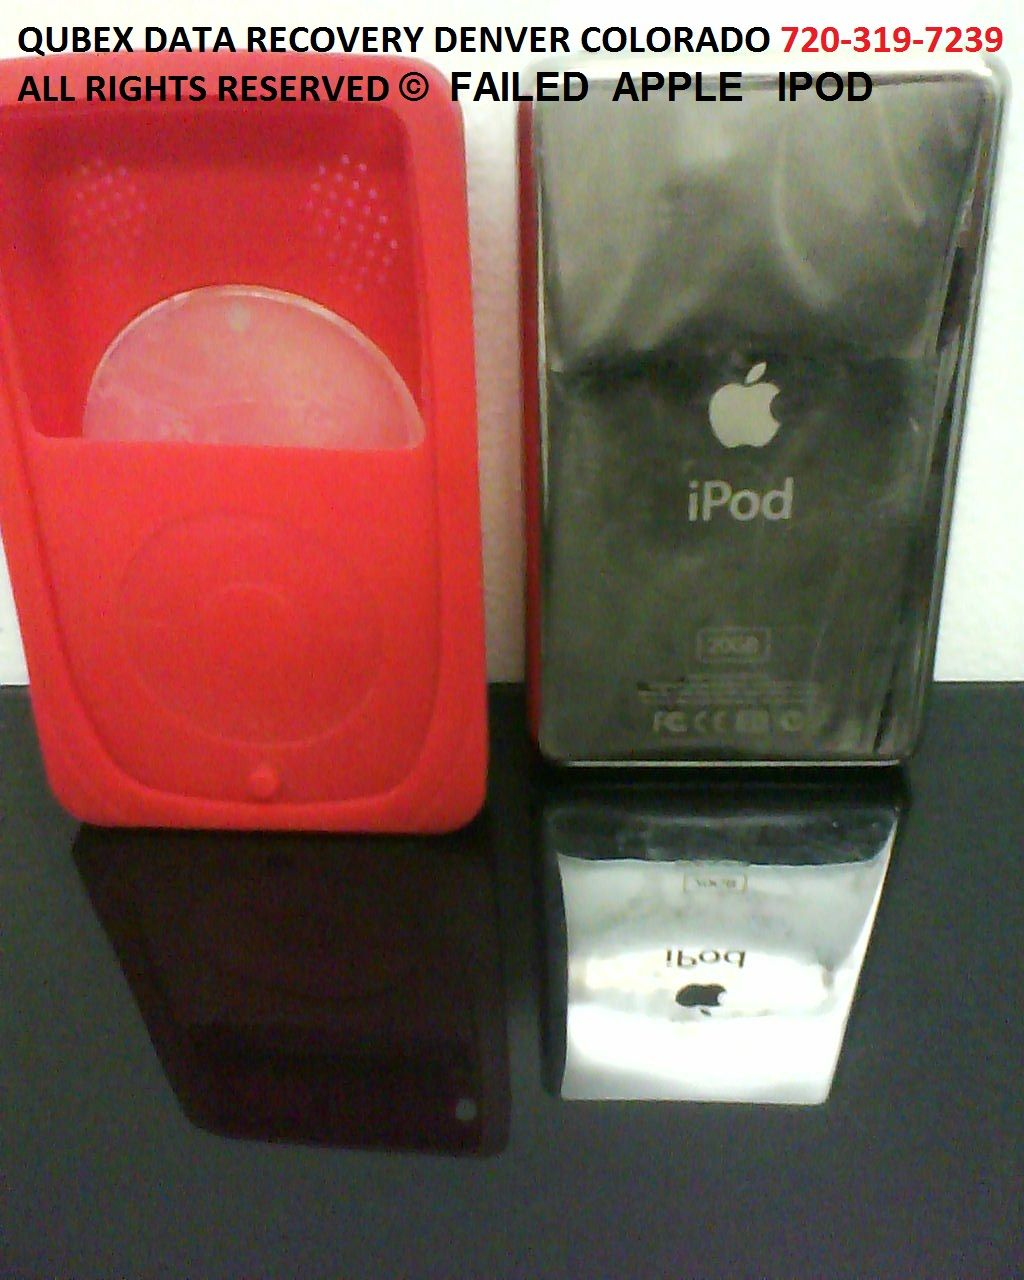 Need IPod Music To Be Recovered>? No Problem! QUBEX DENVER